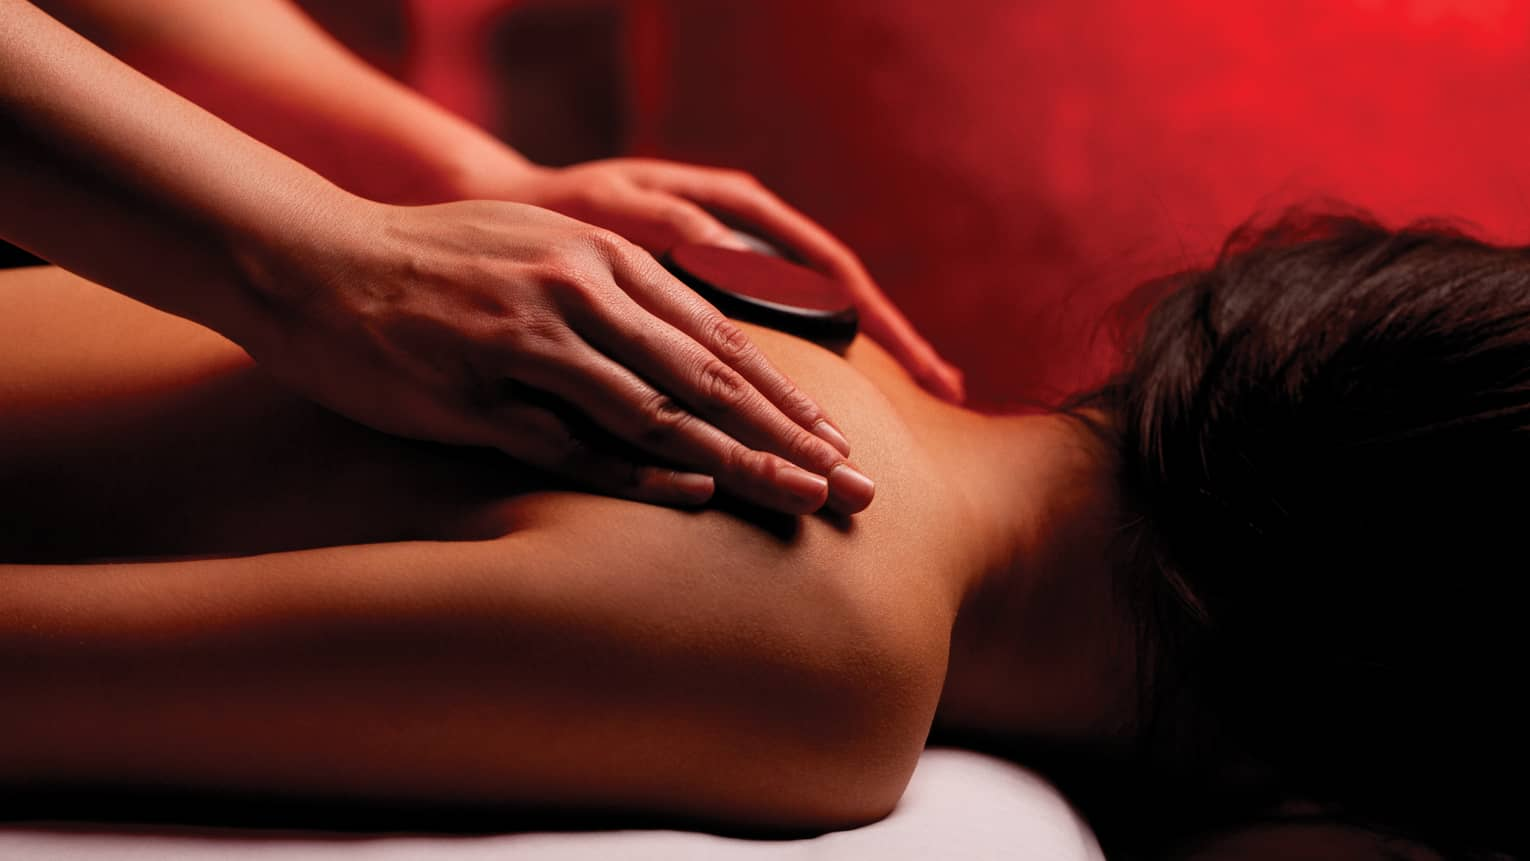 Hands rub woman's bare shoulders during Fusion Massage in spa